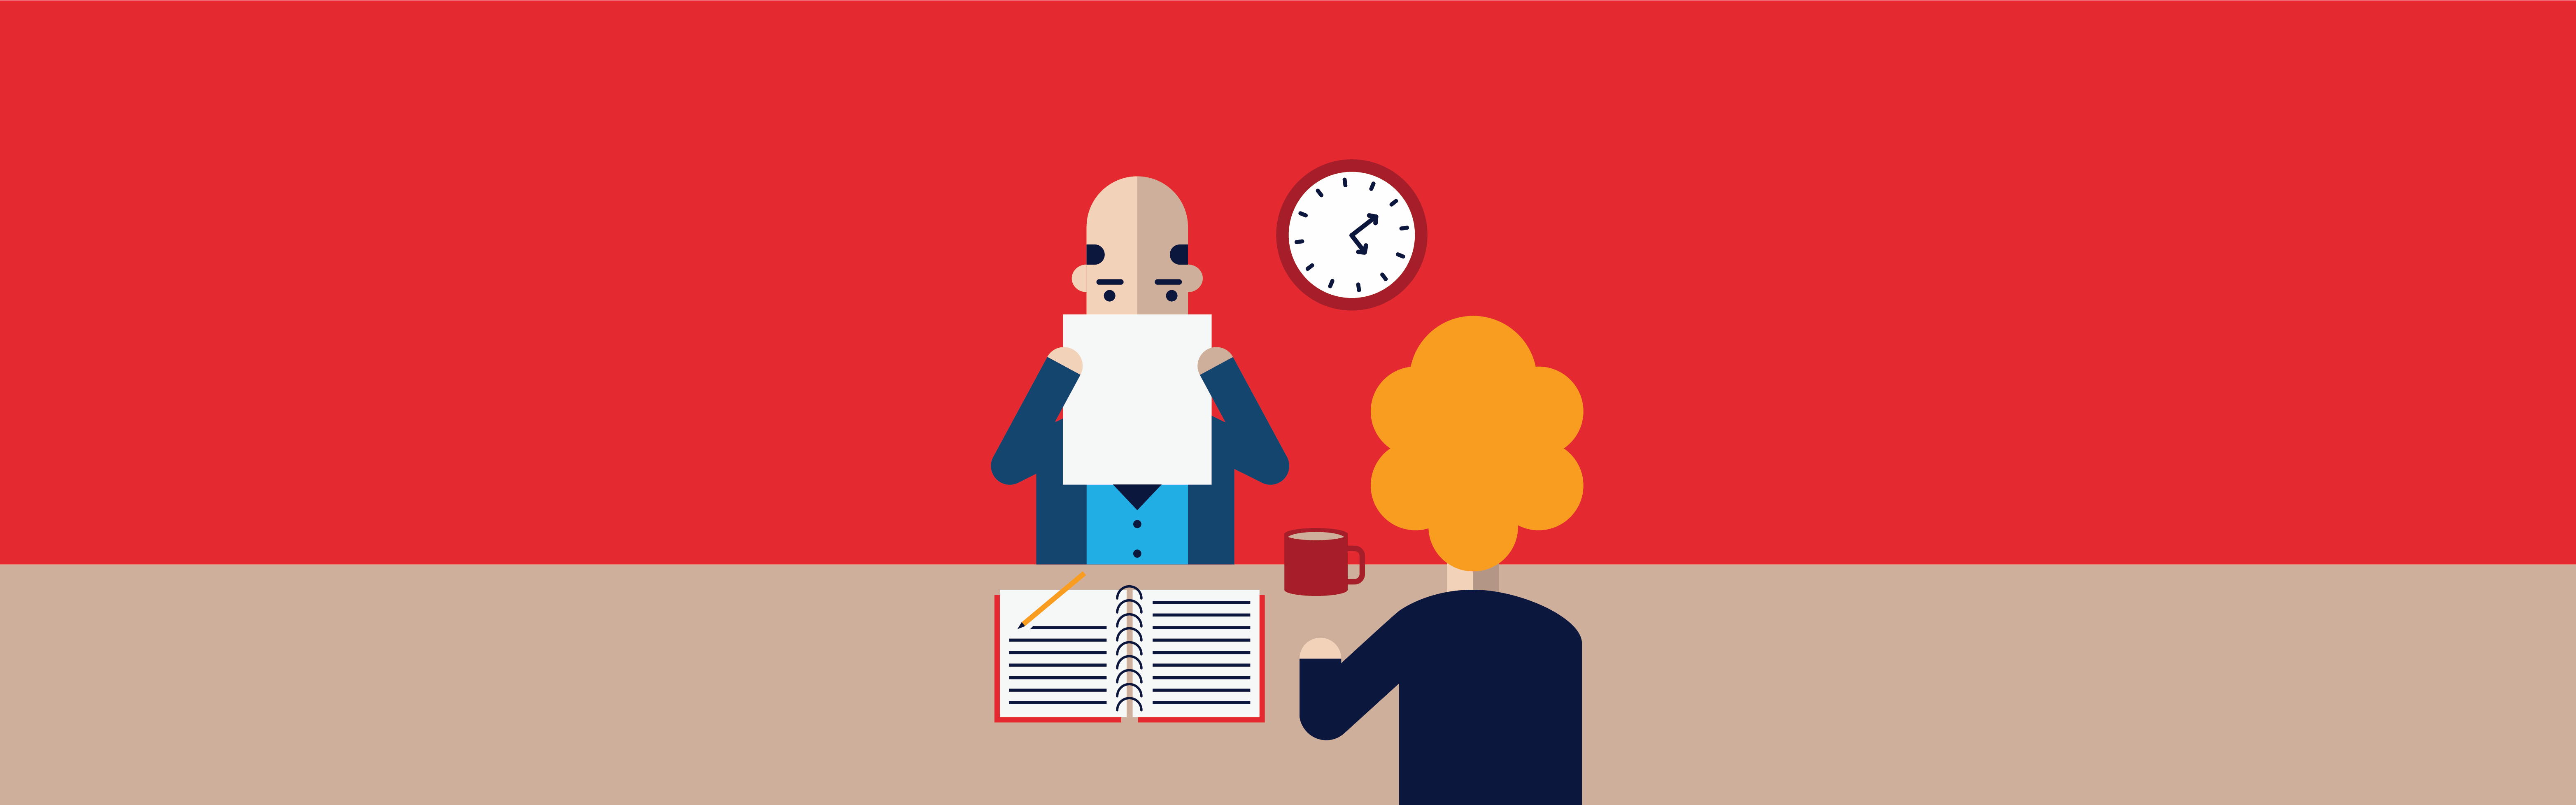 Interview to save time not waste it